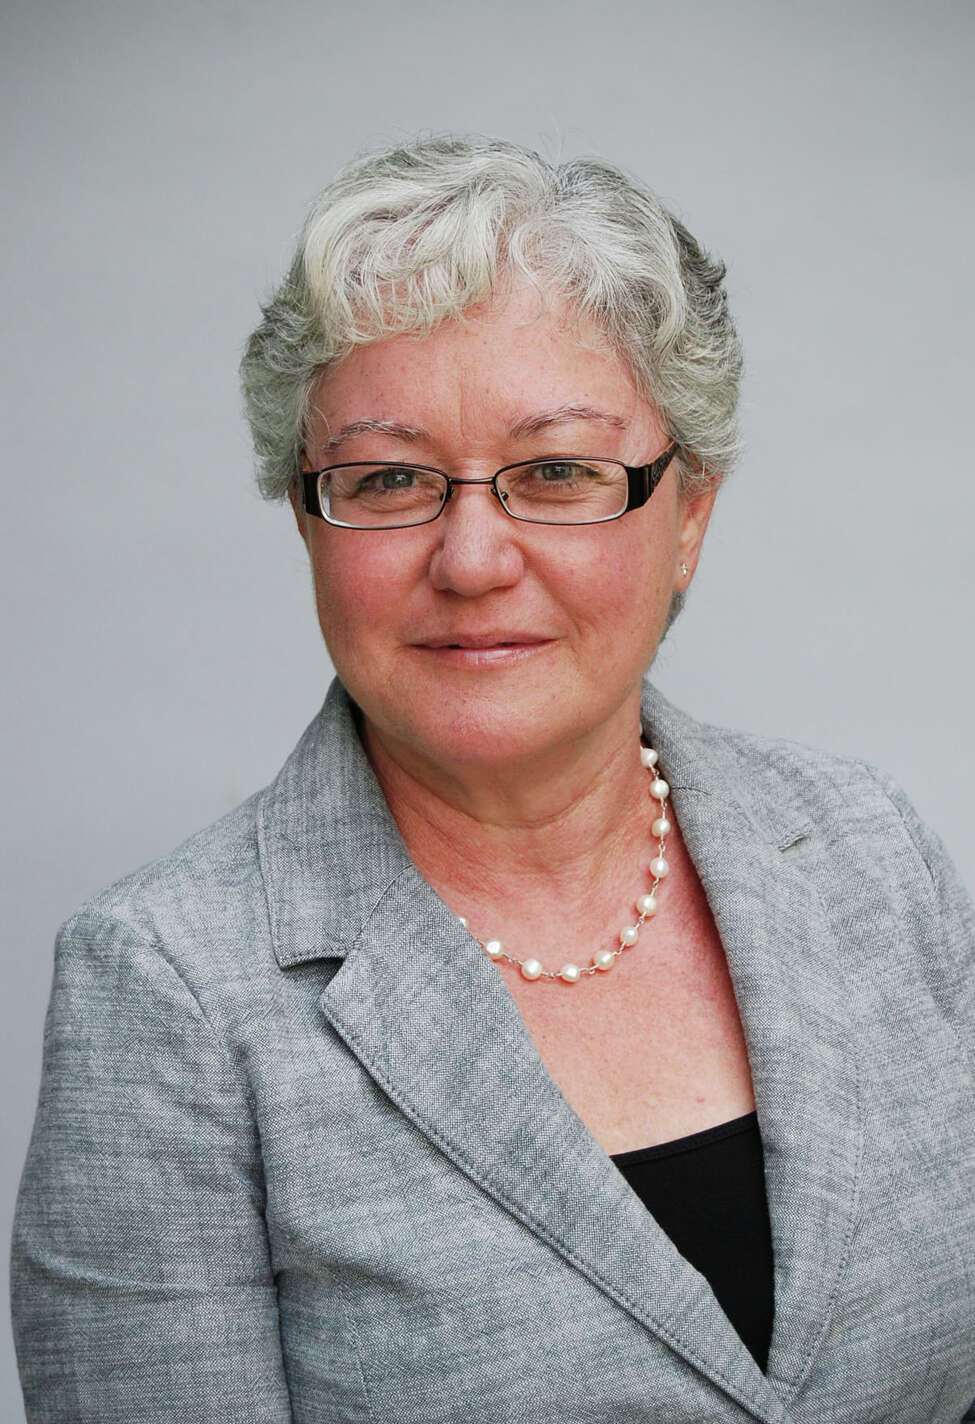 Cynthia Young is the only member of the Malta town board who is a Democrat. (provided photo)